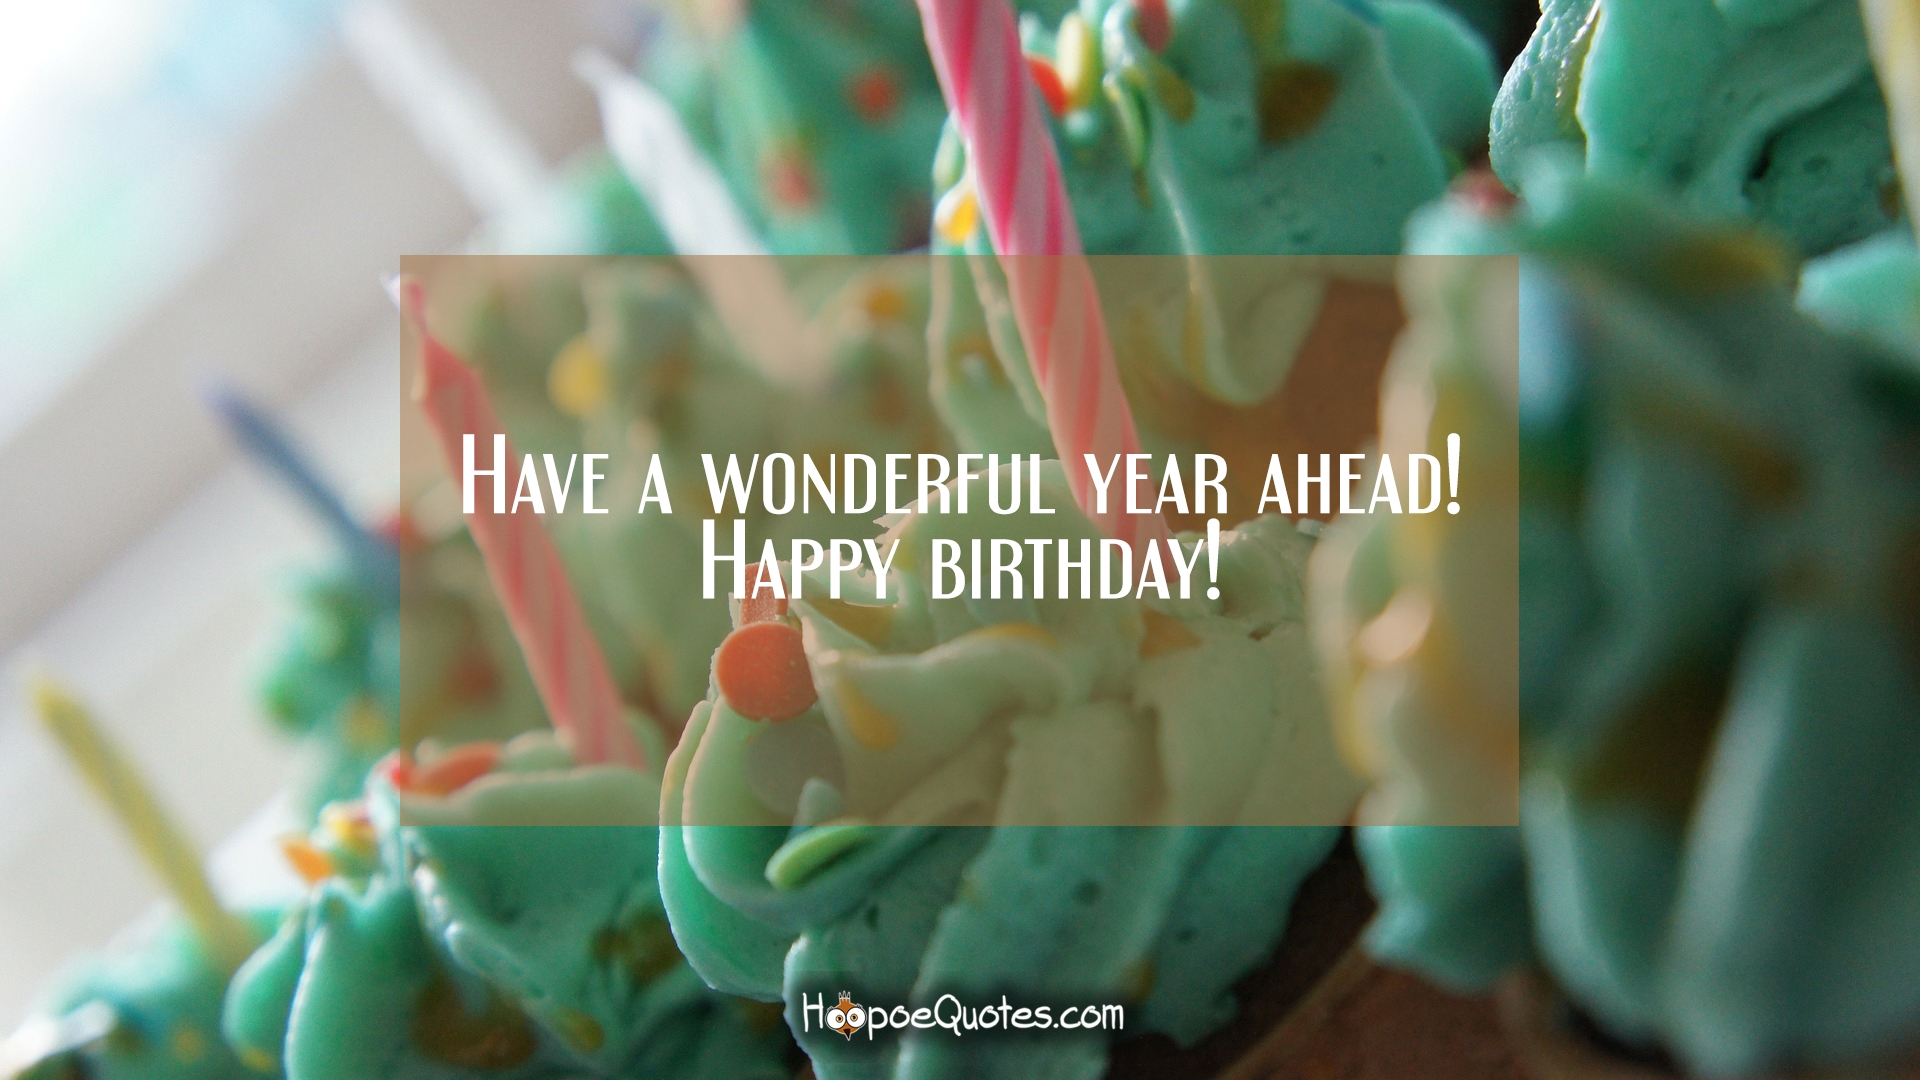 Have A Wonderful Year Ahead Happy Birthday HoopoeQuotes